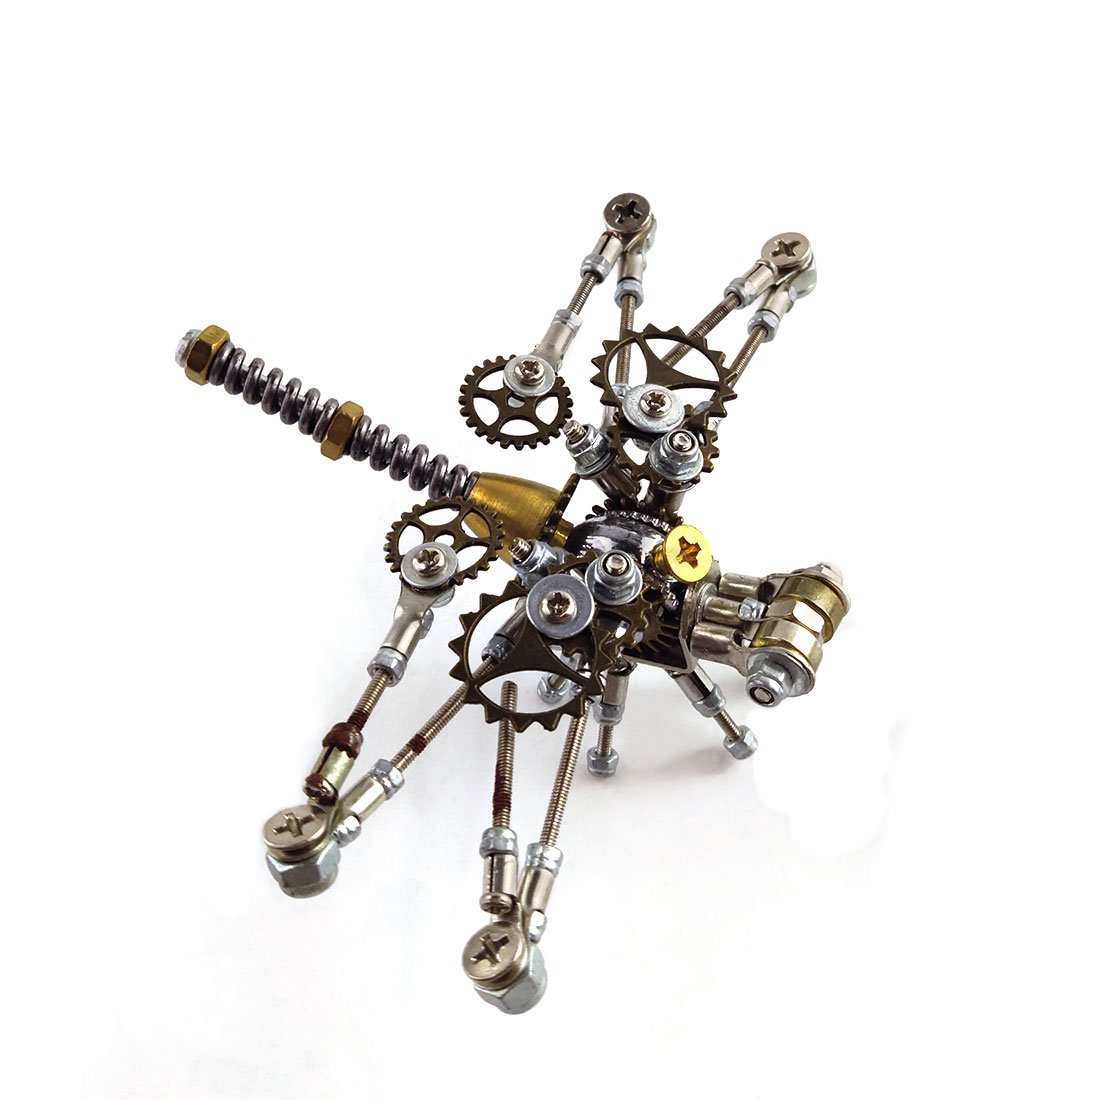 152Pcs Mechanical Dragonfly 3D Puzzle DIY Metal Insect Model Kit